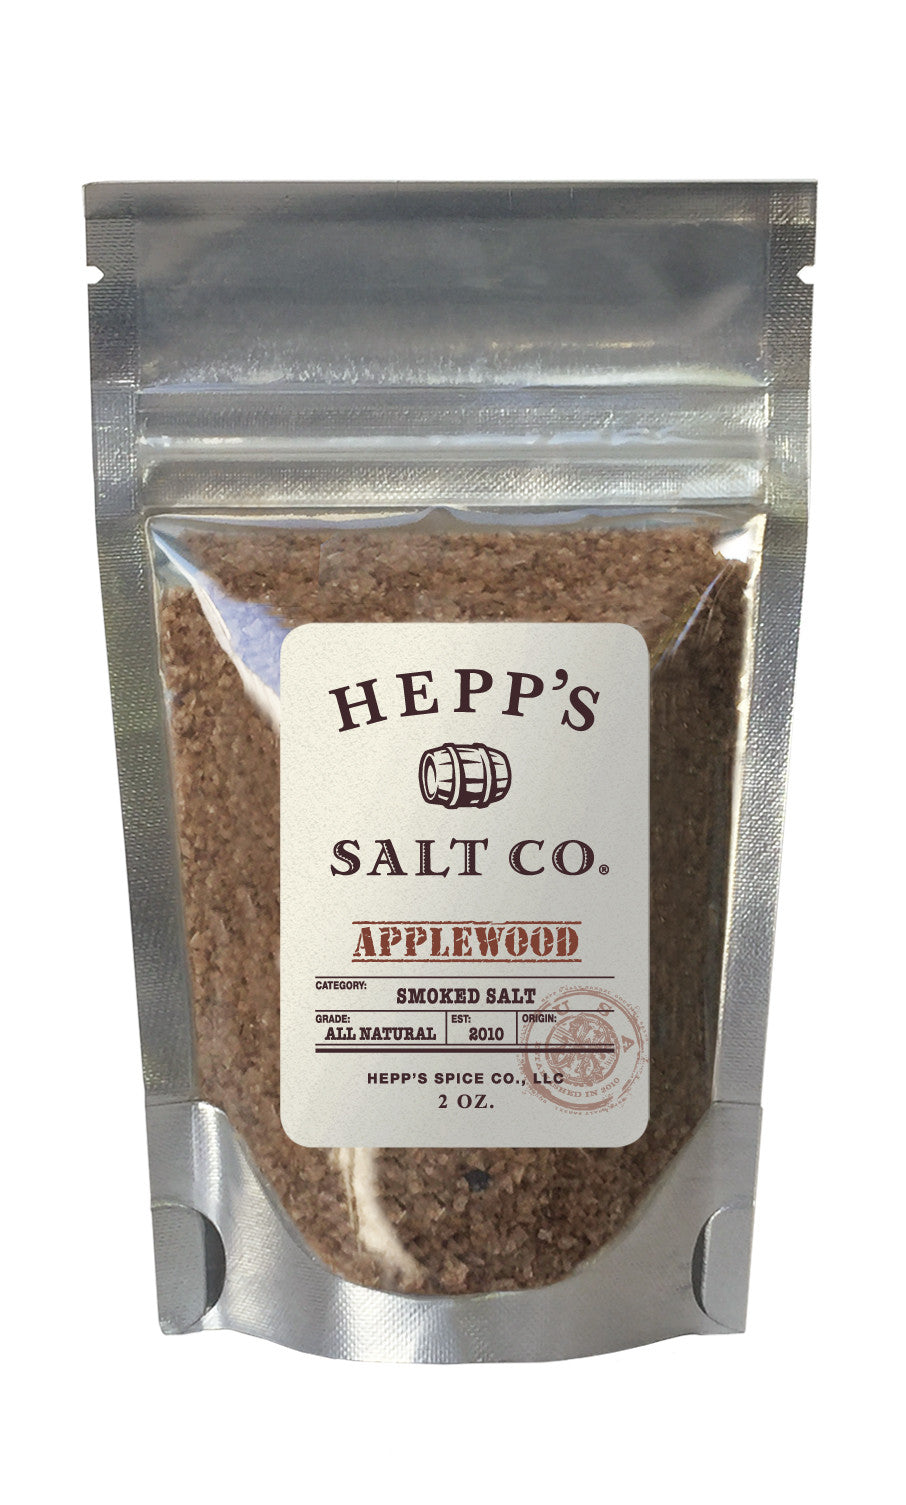 Applewood Smoked Sea Salt - HEPPS SALT CO.